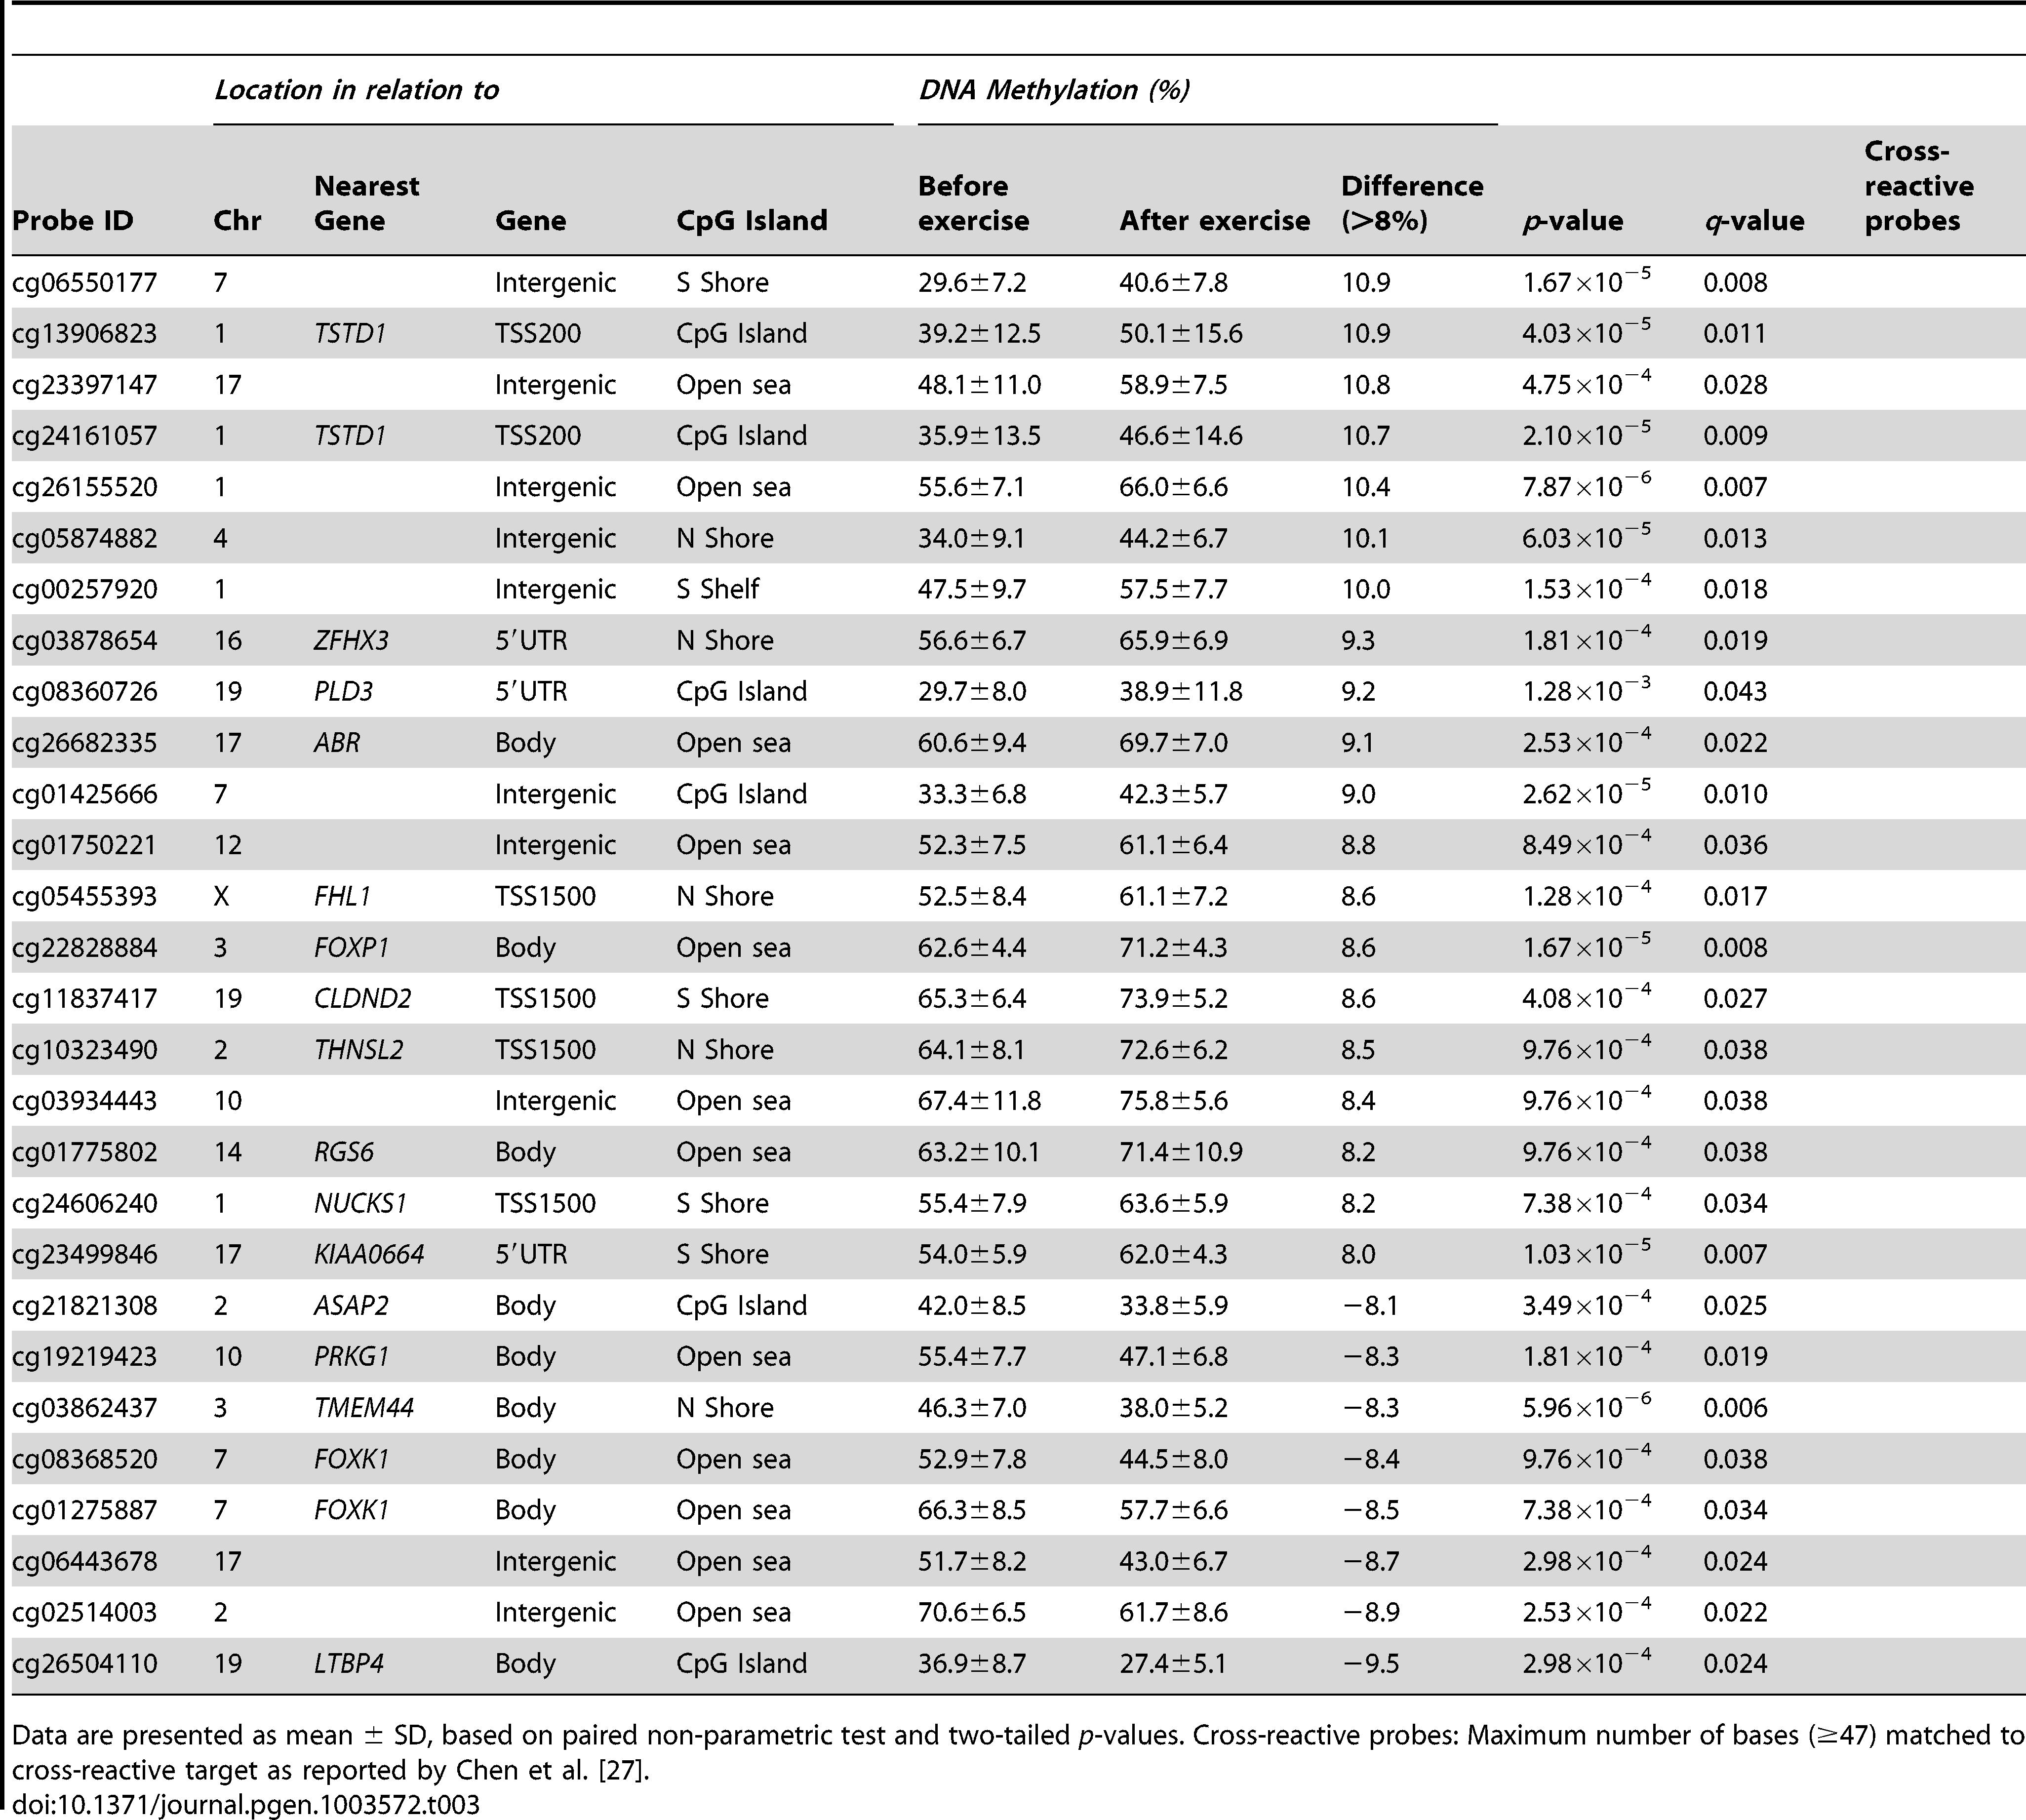 Changes in adipose tissue DNA methylation in response to a 6 months exercise intervention. Significant CpG sites (<i>q</i><0.05) with the biggest change in DNA methylation (>8%).